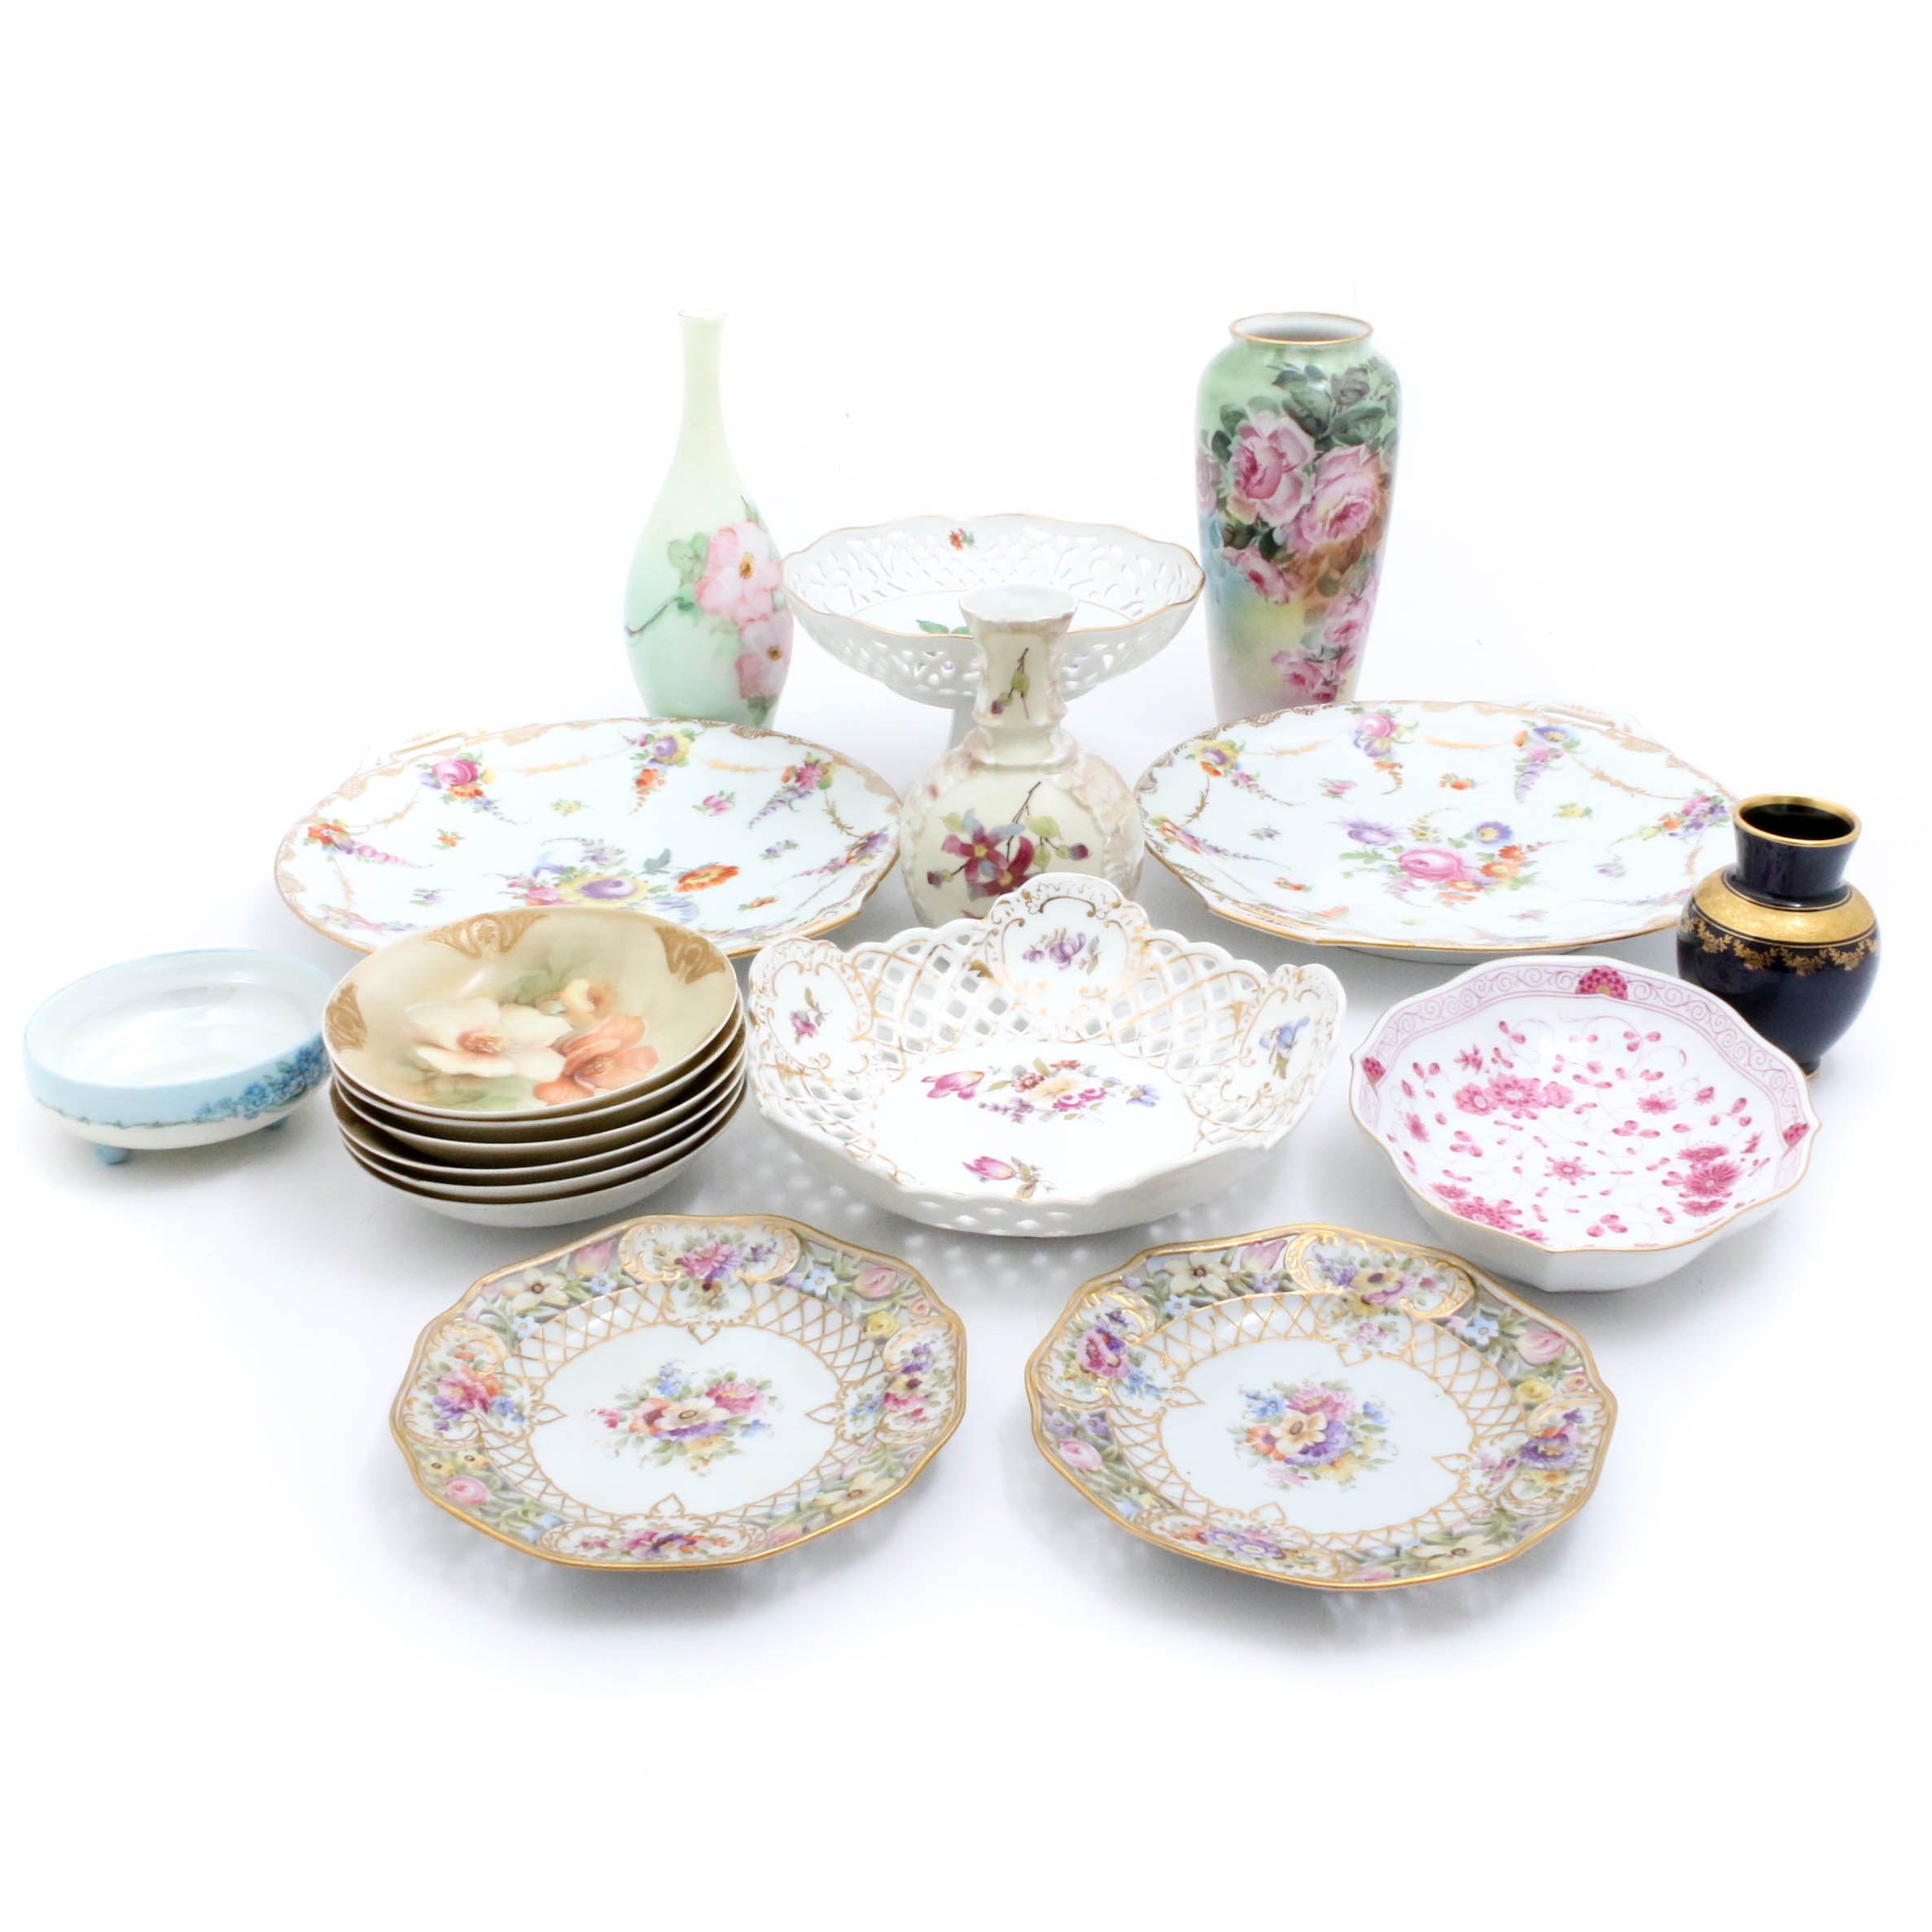 European Hand Painted Porcelain